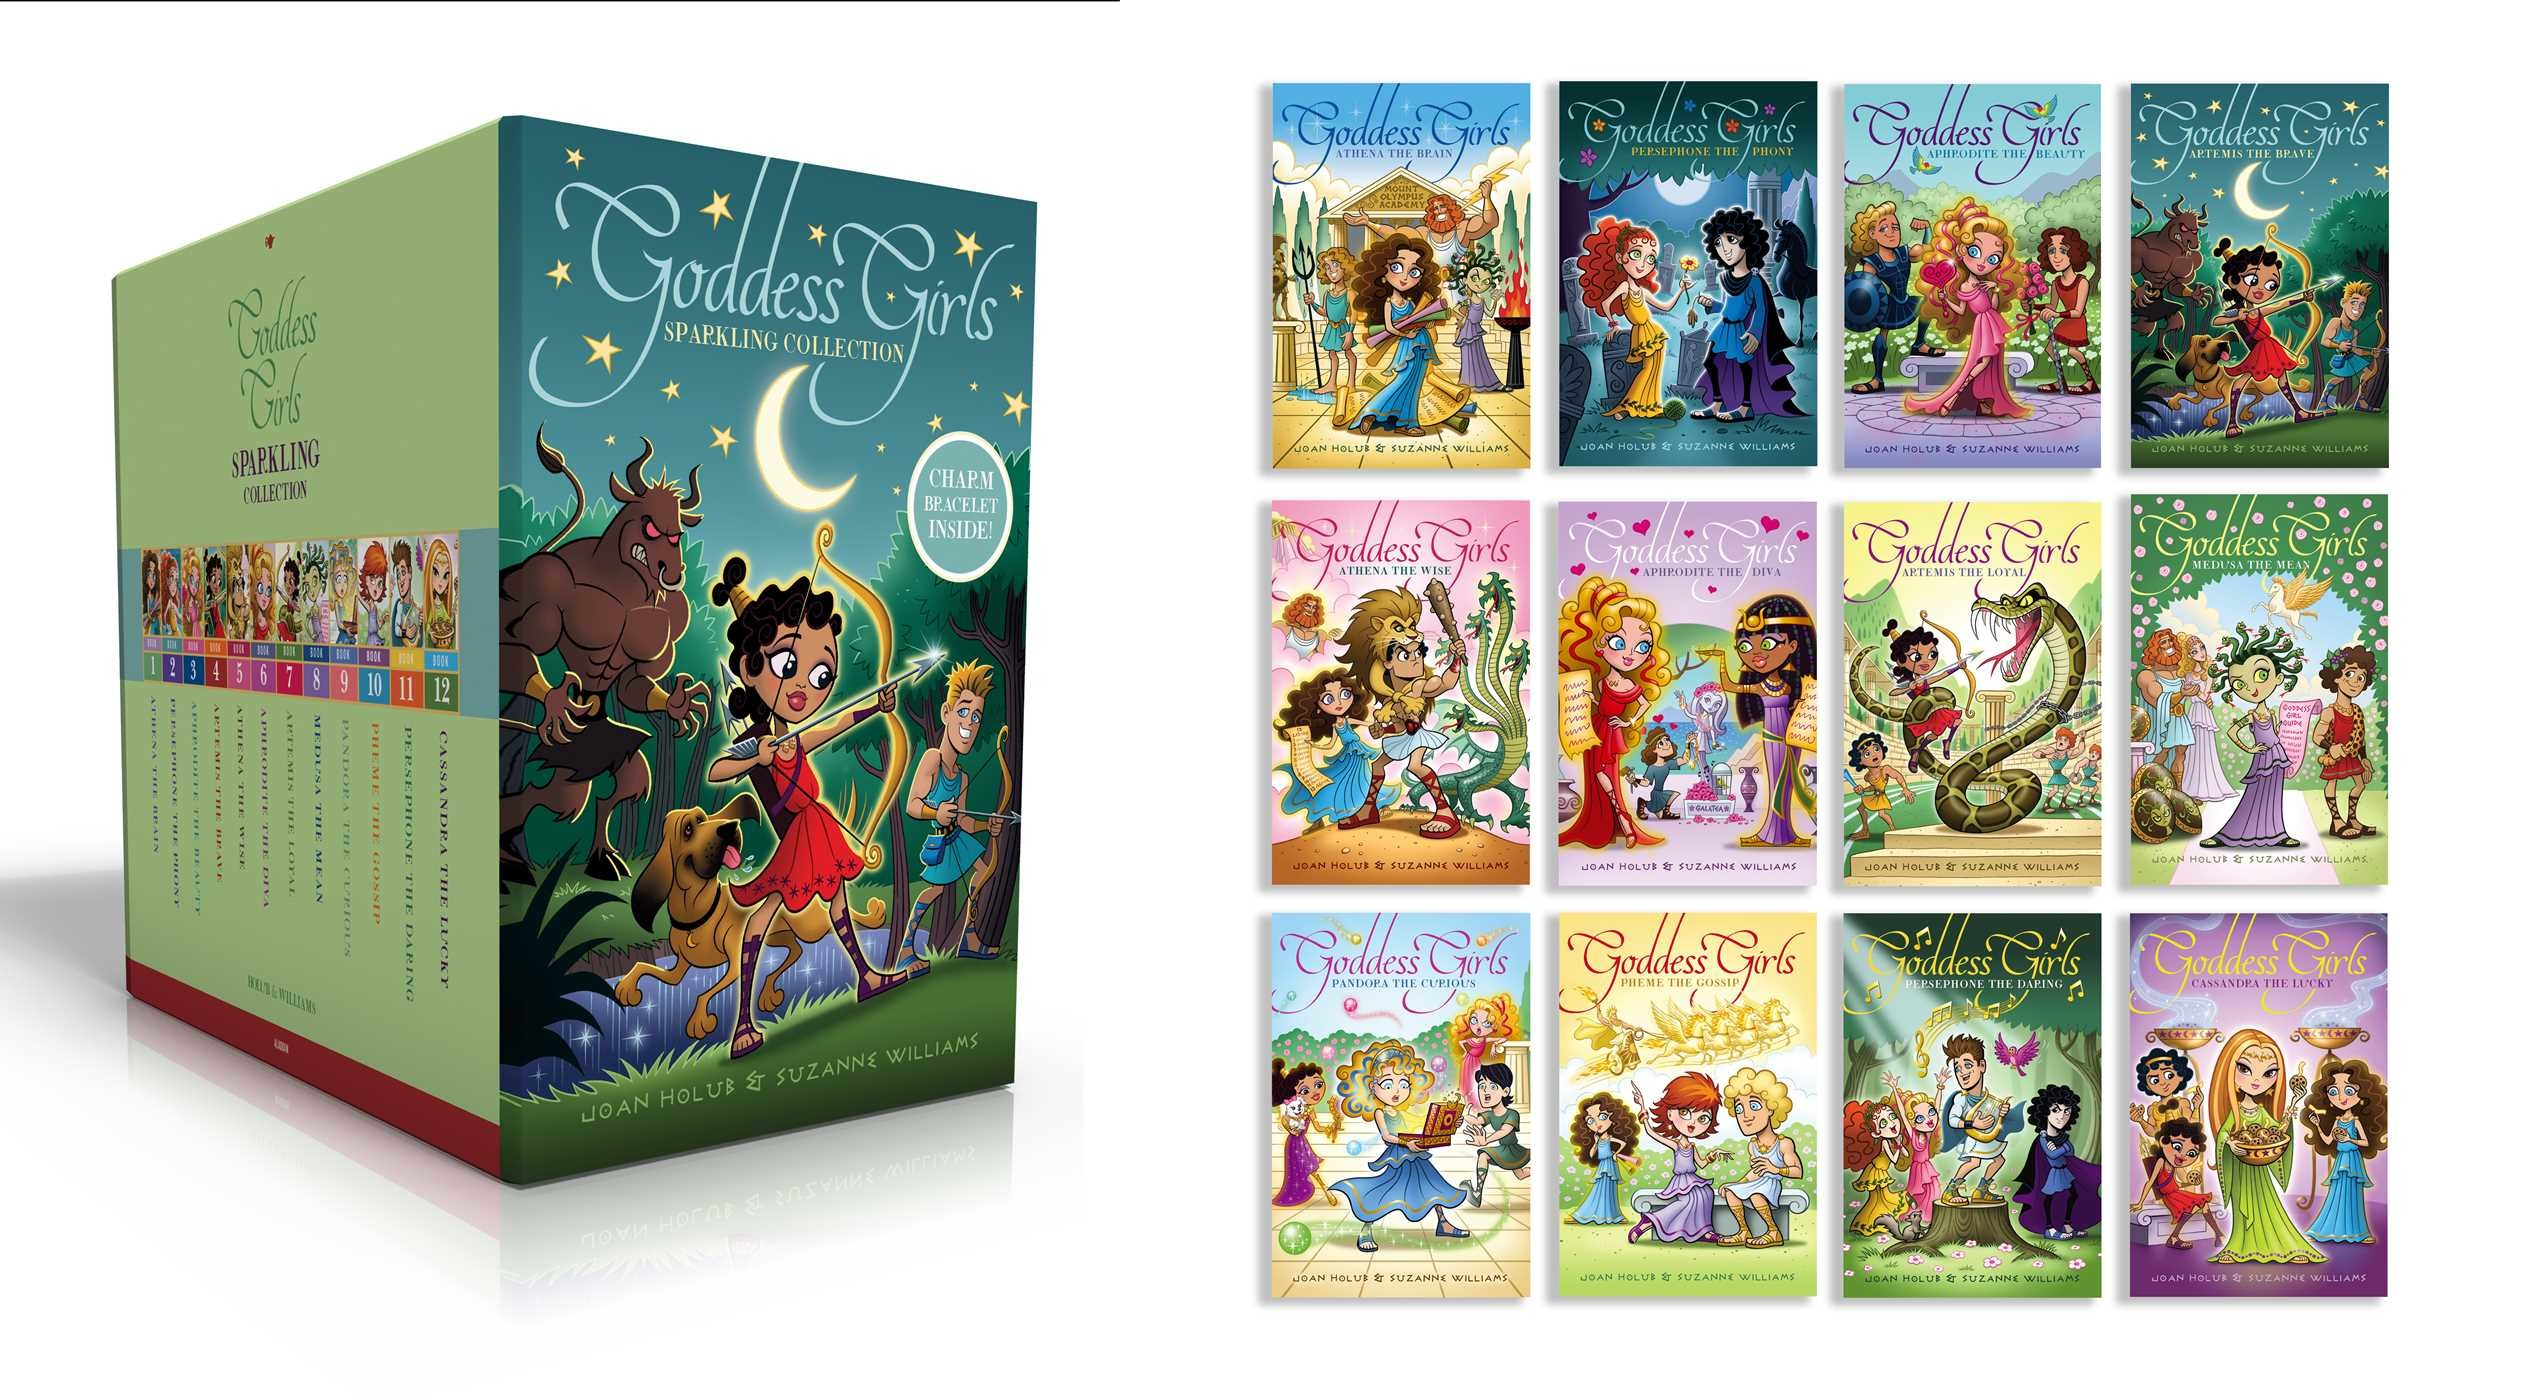 Goddess girls sparkling collection books 1 12 charm bracelet included 9781481487238.in01